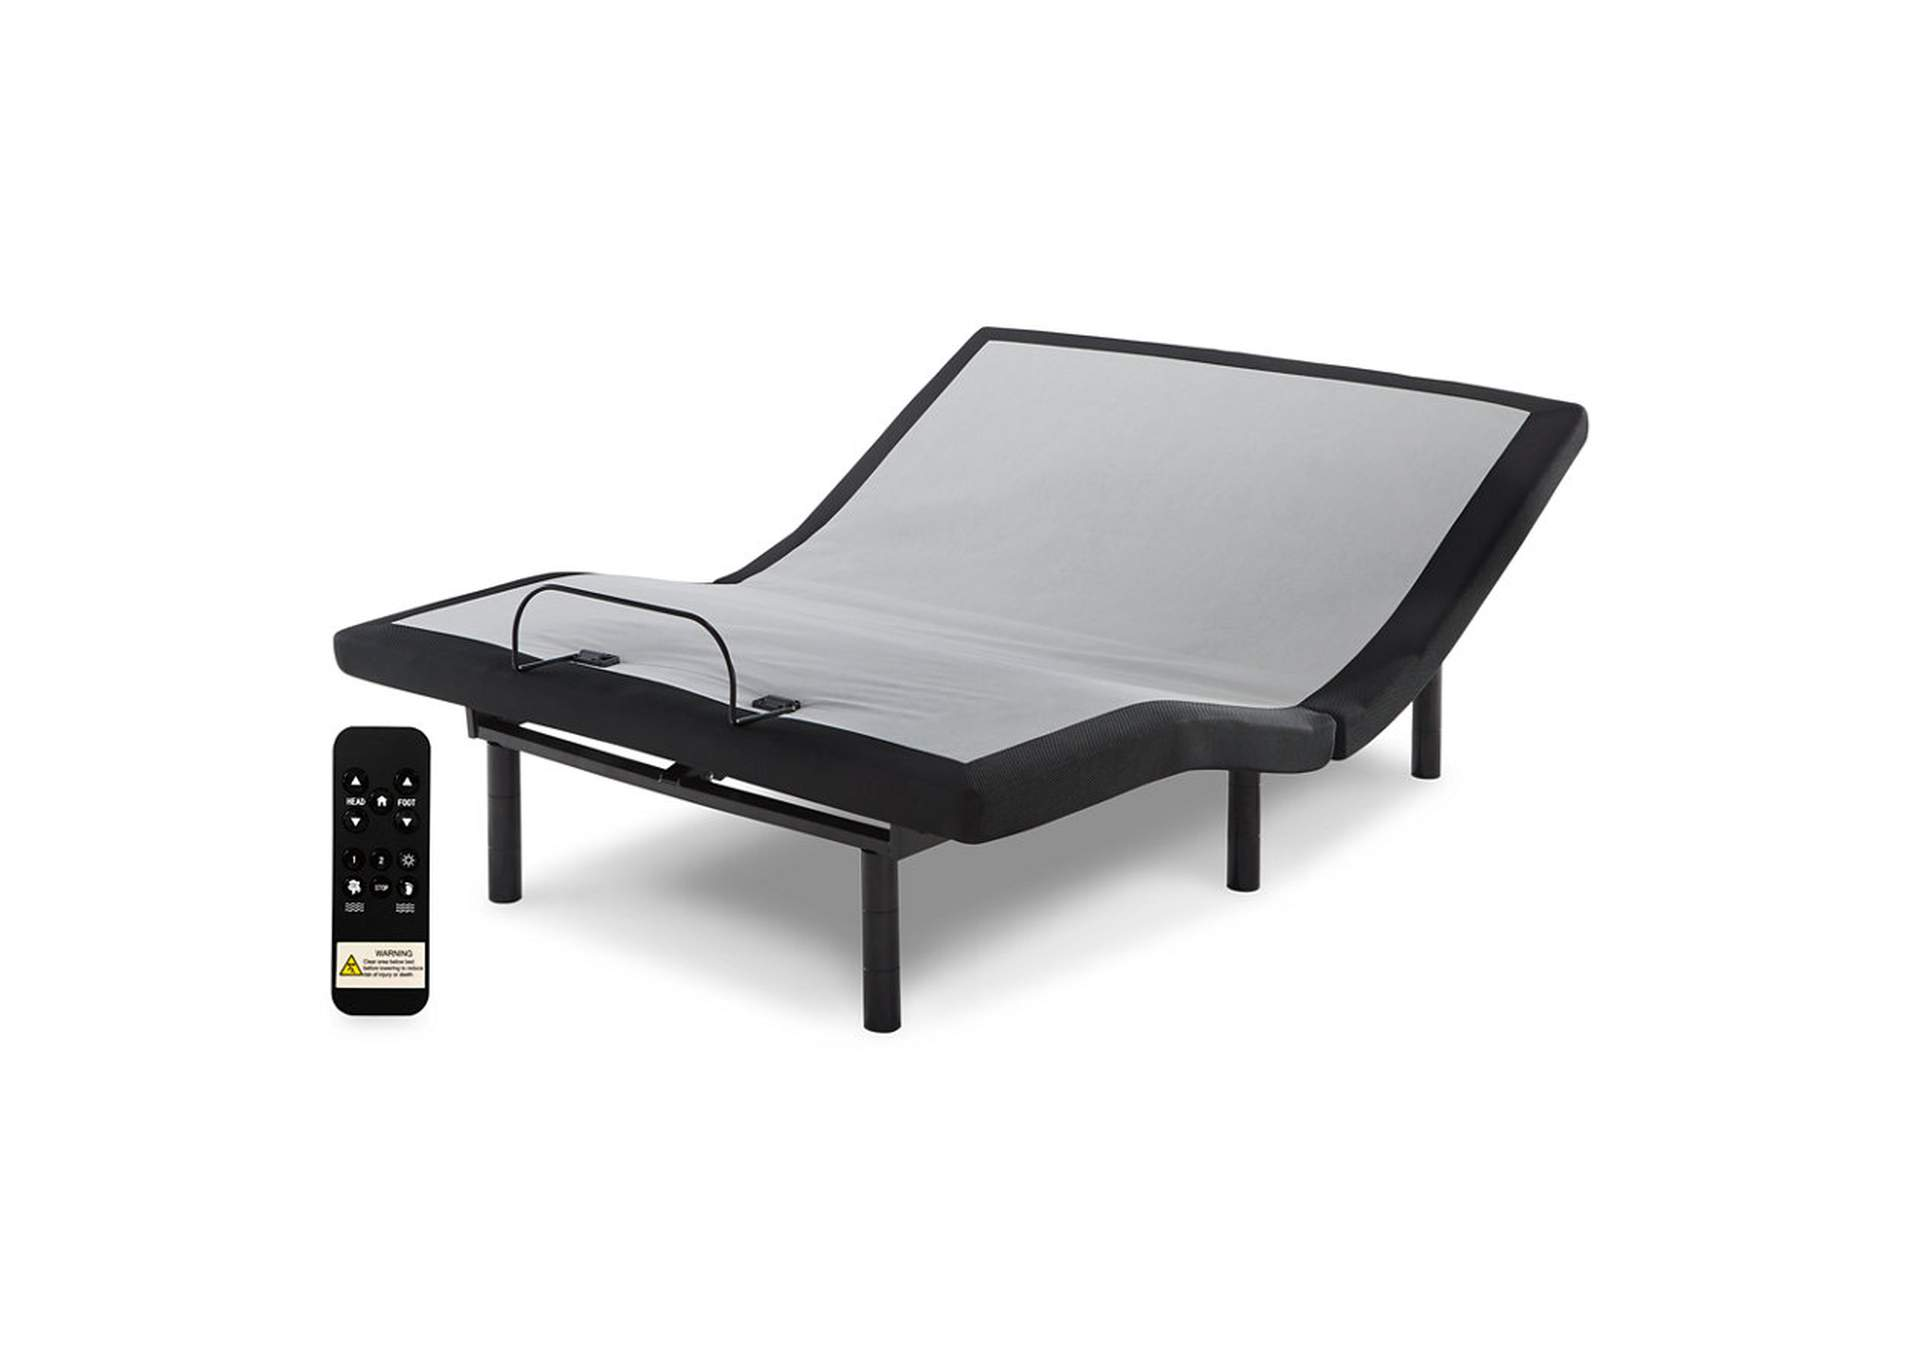 Head-Foot Model-Better Twin XL Adjustable Base,Sierra Sleep by Ashley